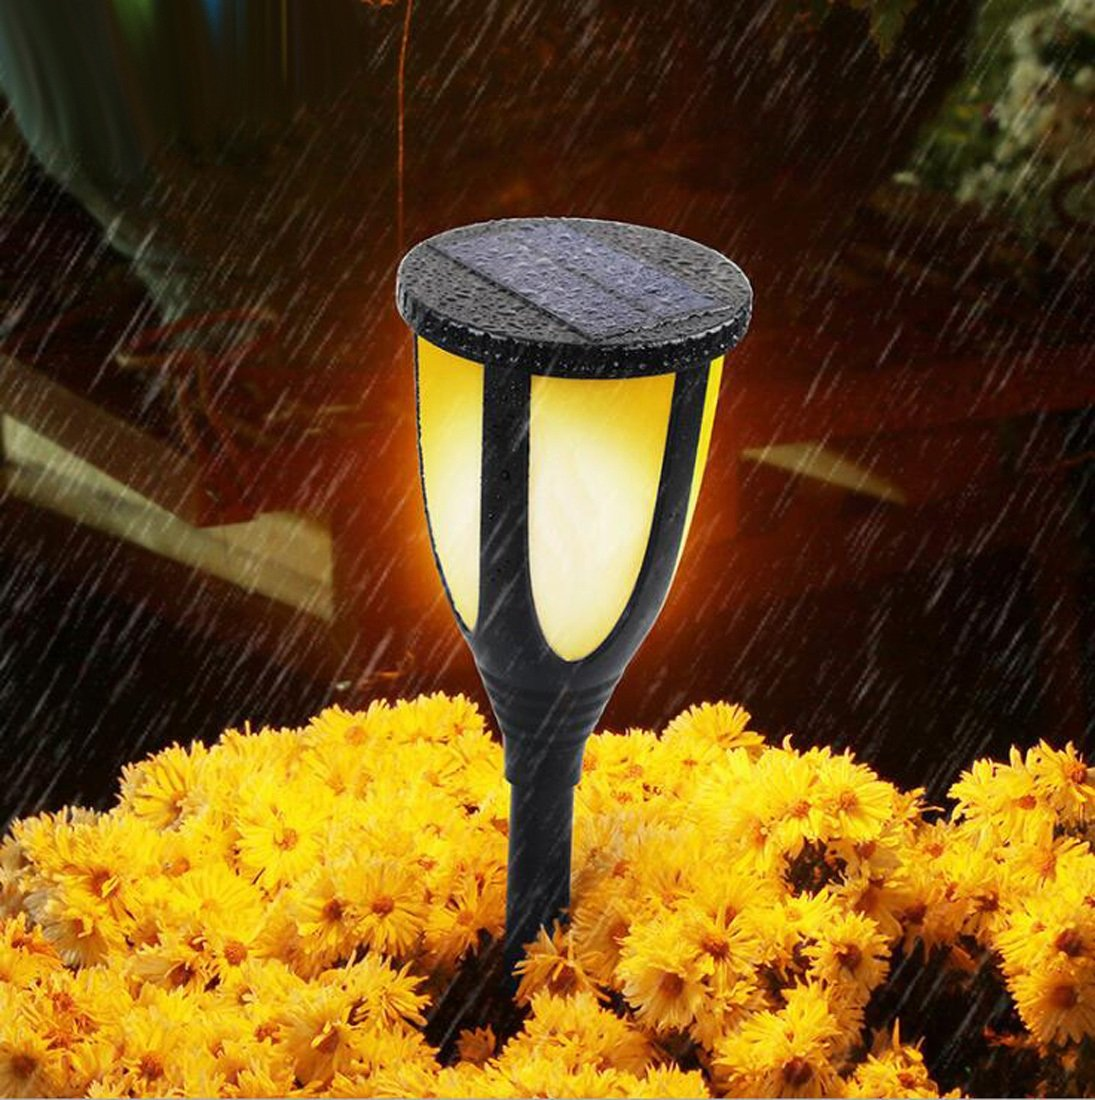 Solar Energy Lamp Led Outdoor Lawn plug in lights Waterproof Solar Courtyard Landscape Torch Lights Insertion Type Street Light Simulation Flame Lighting